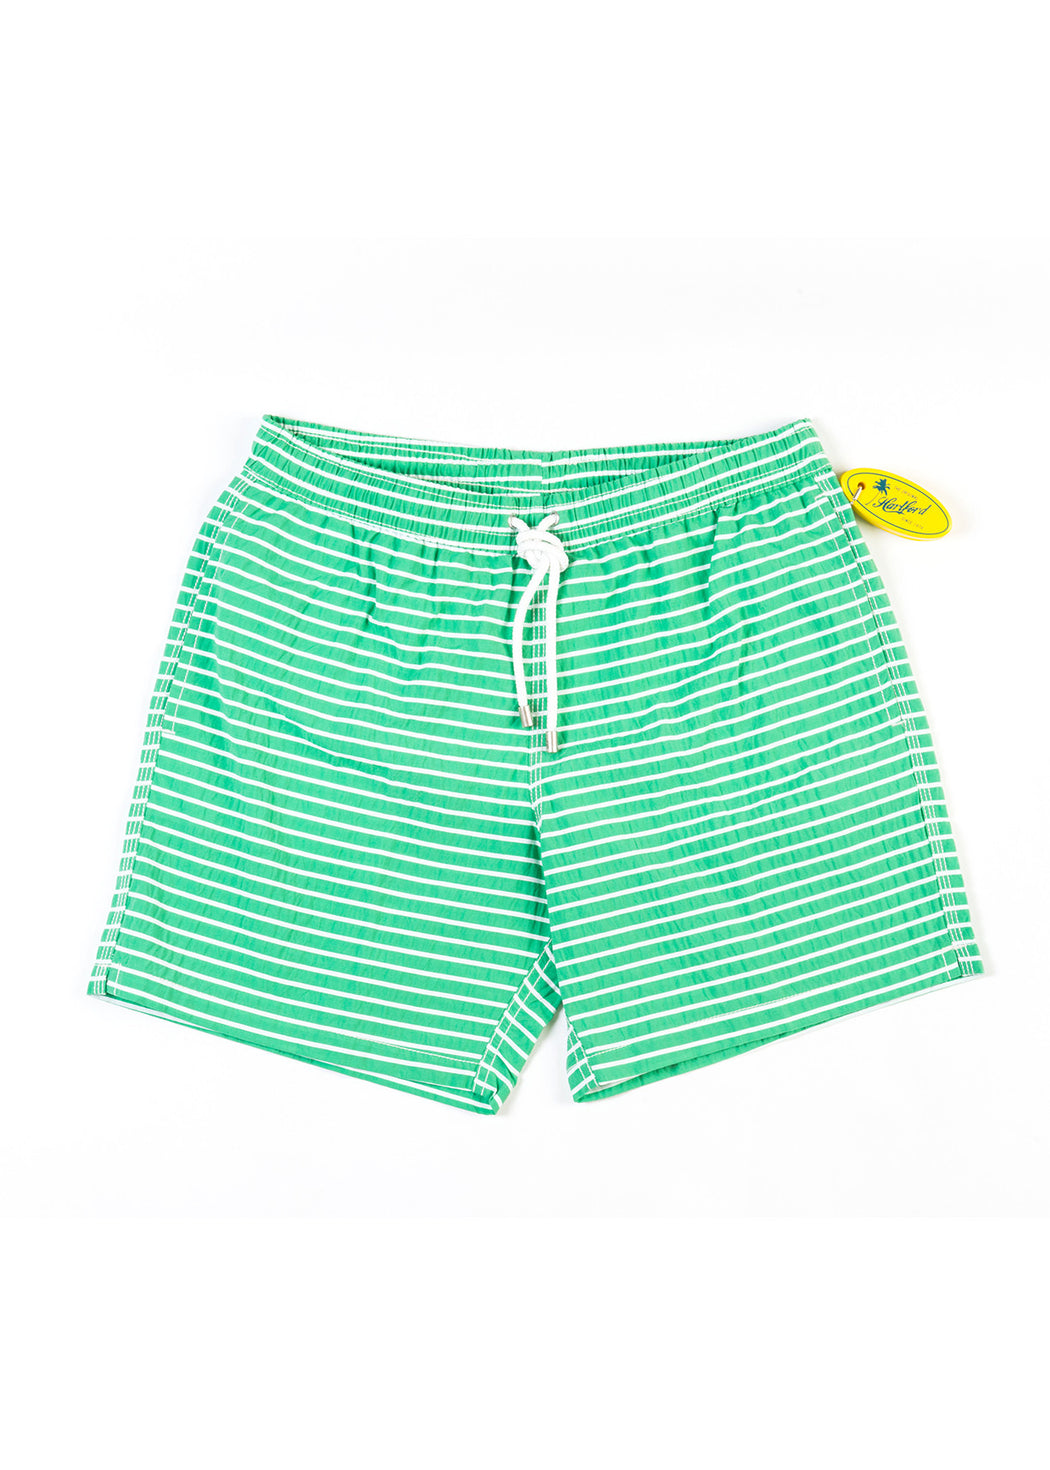 STRIPED GREEN SUMMER SWIMWEAR - justBrazil store